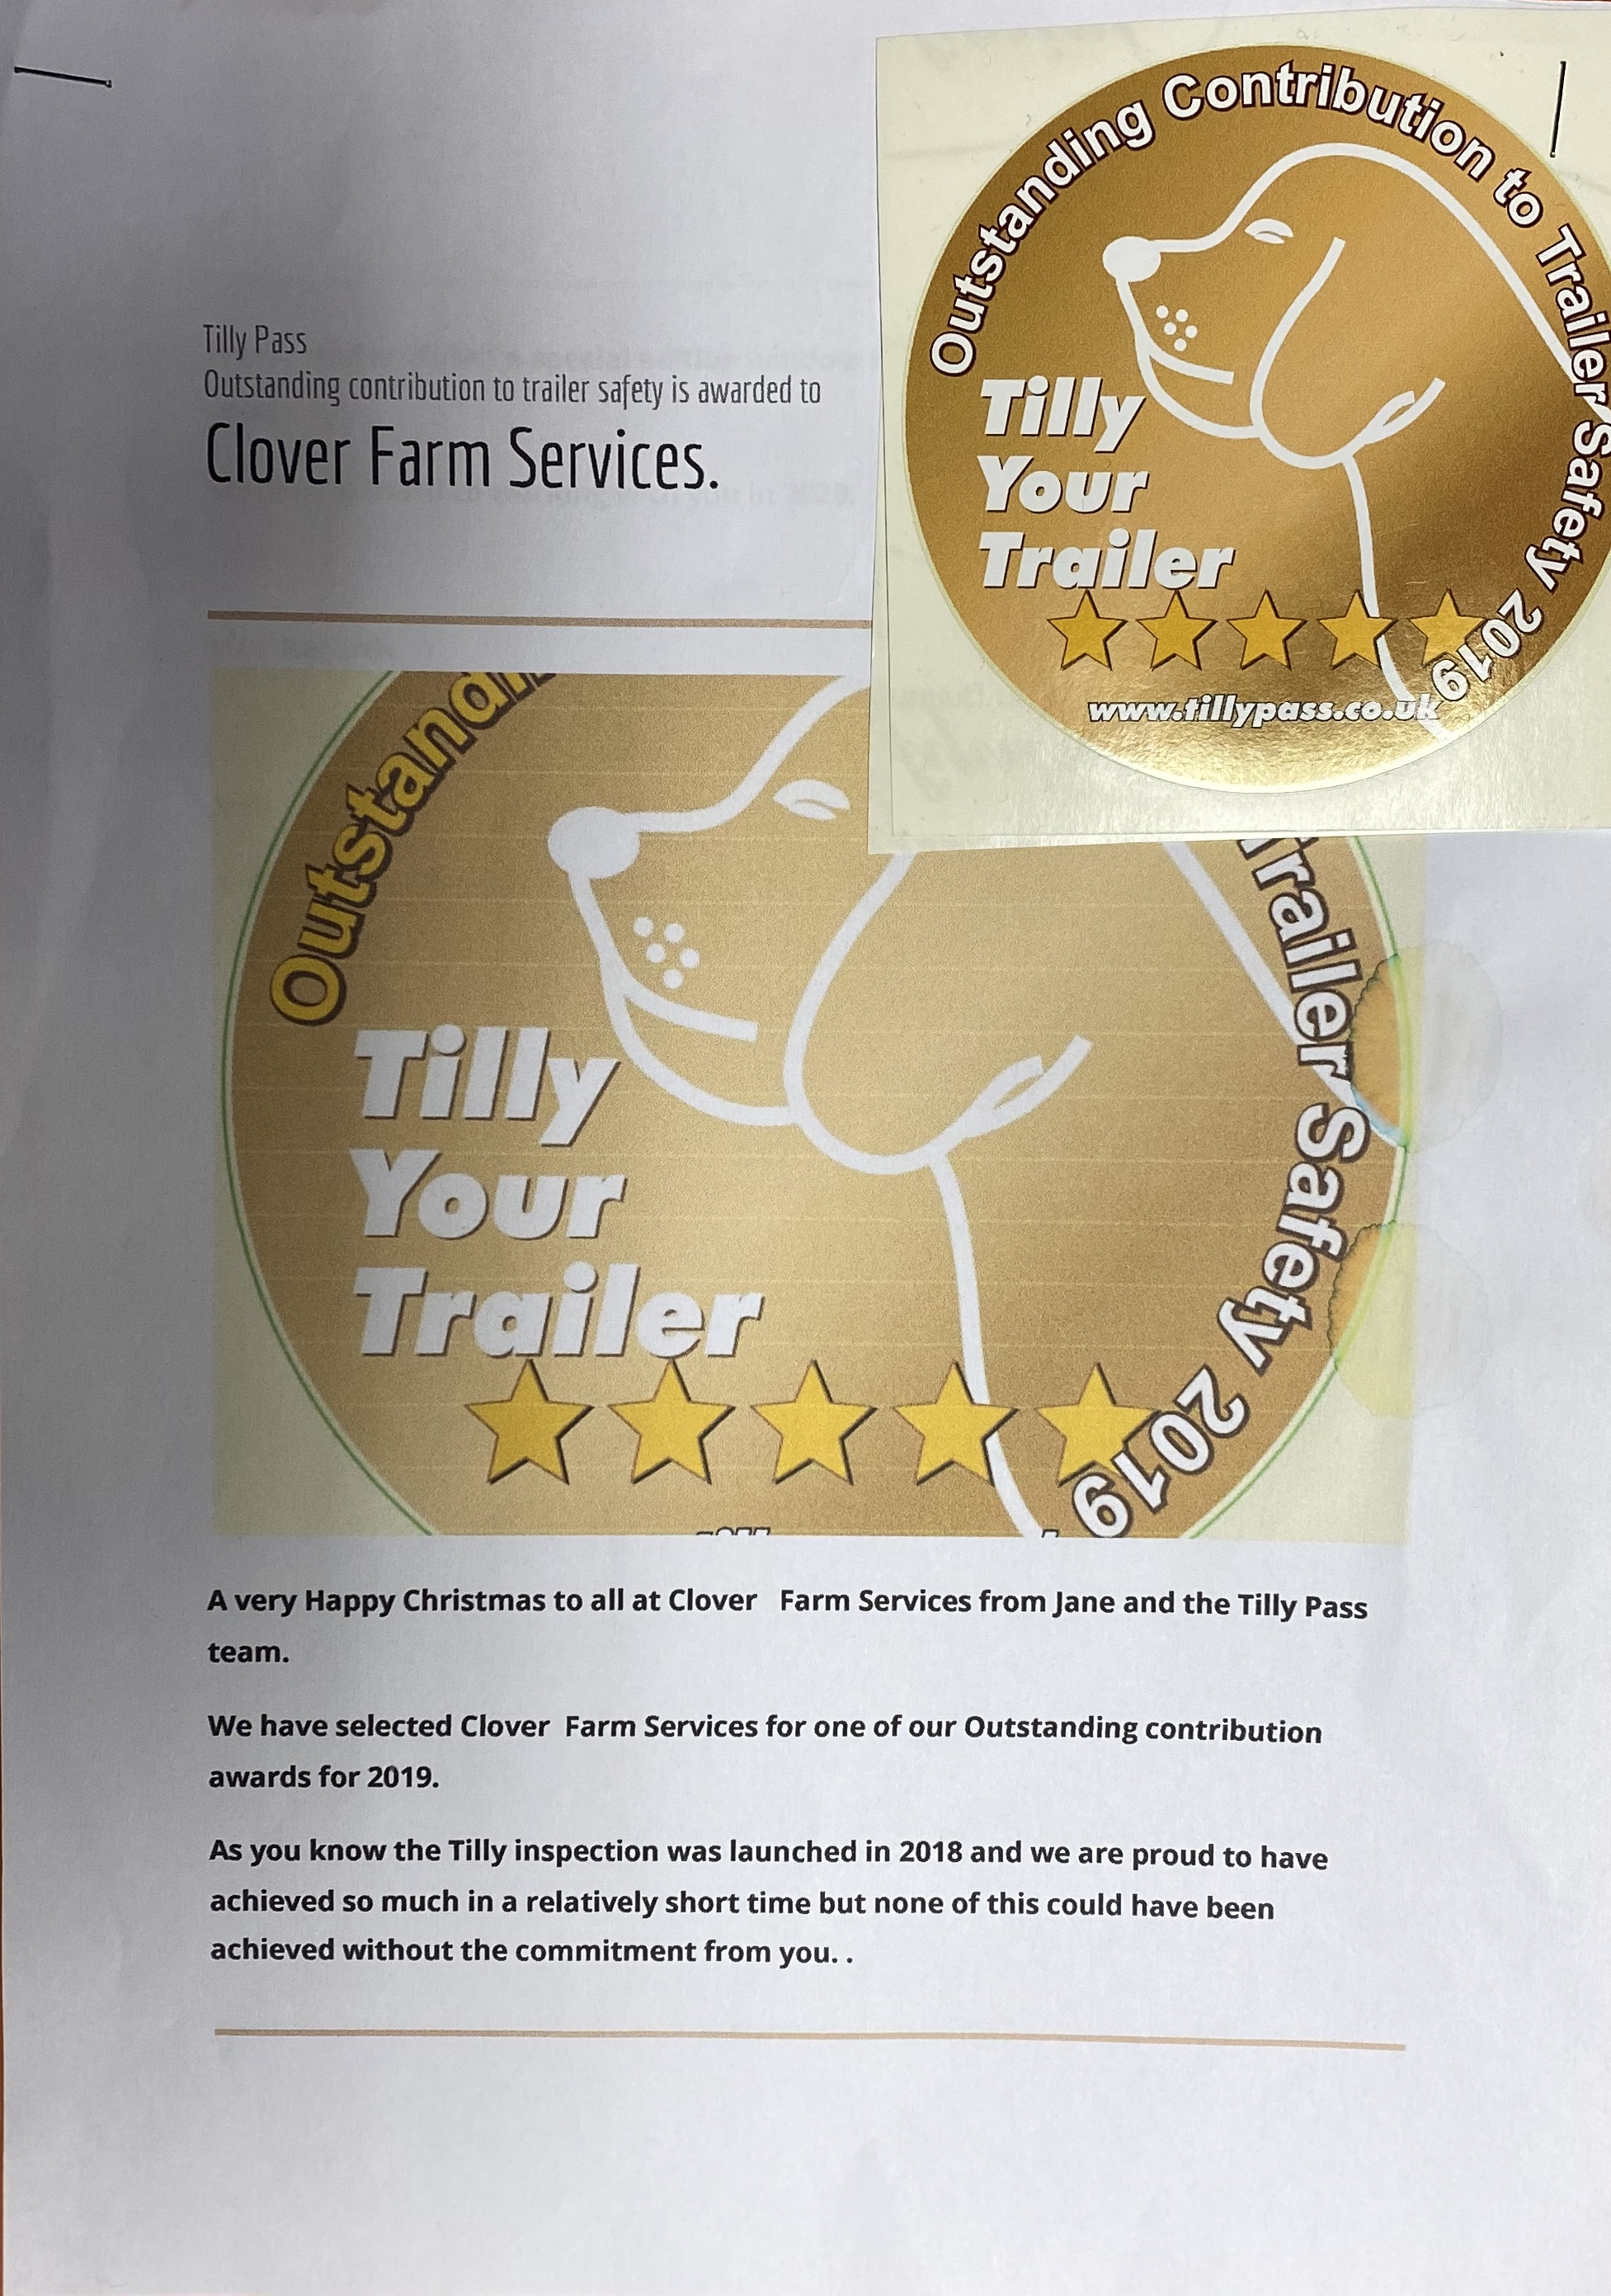 Tilly Pass - Outstanding Contribution Awards 2019